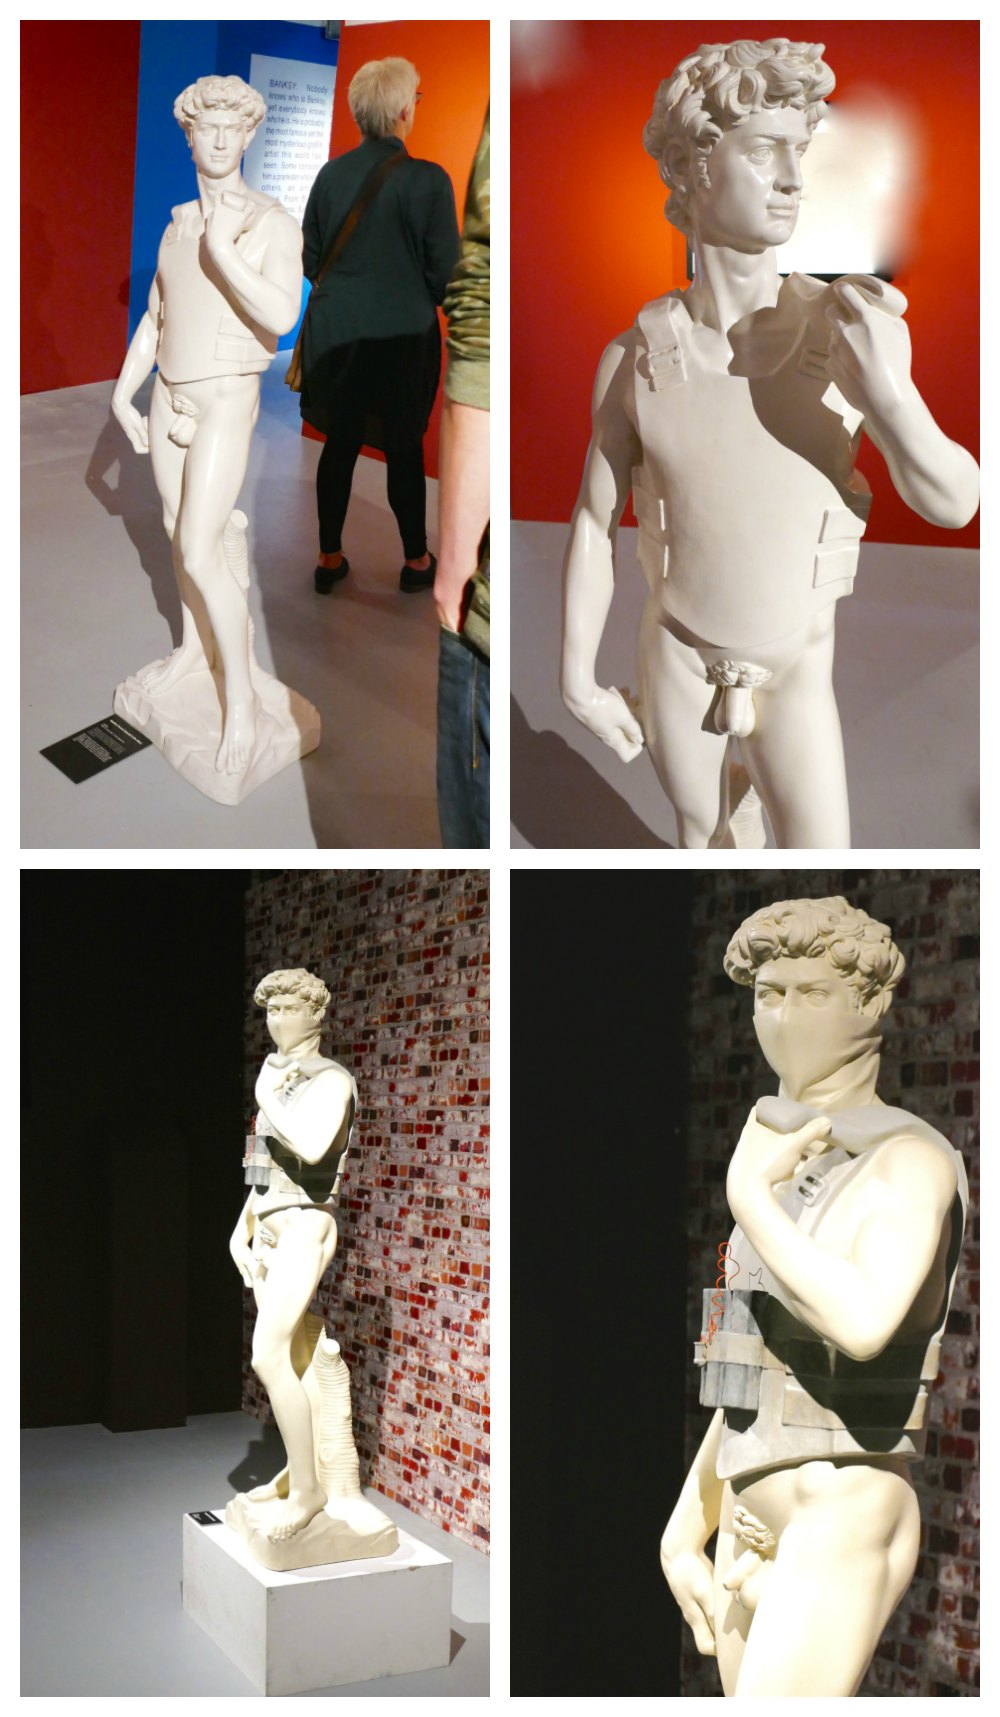 Michelangelo's David bullet proof and with bomb by Banksy  curlytraveller.com